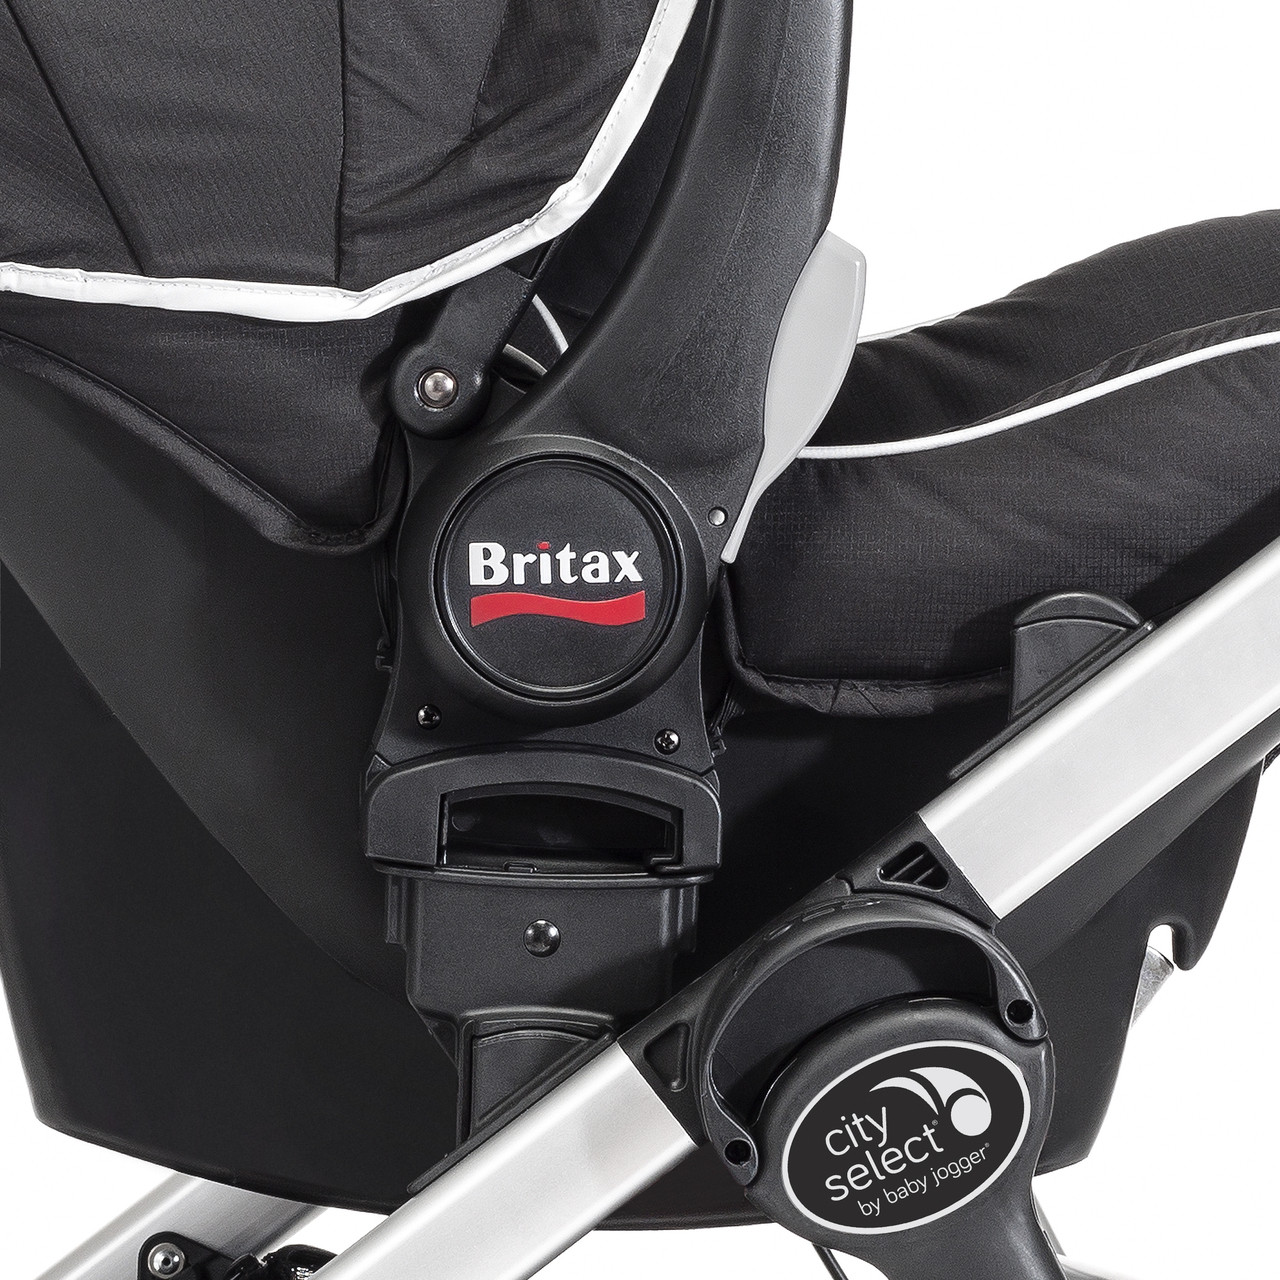 Britax Car Seat With Stroller City Select Stroller Britax B Safe Car Seat Adapter By Baby Jogger Ships Now